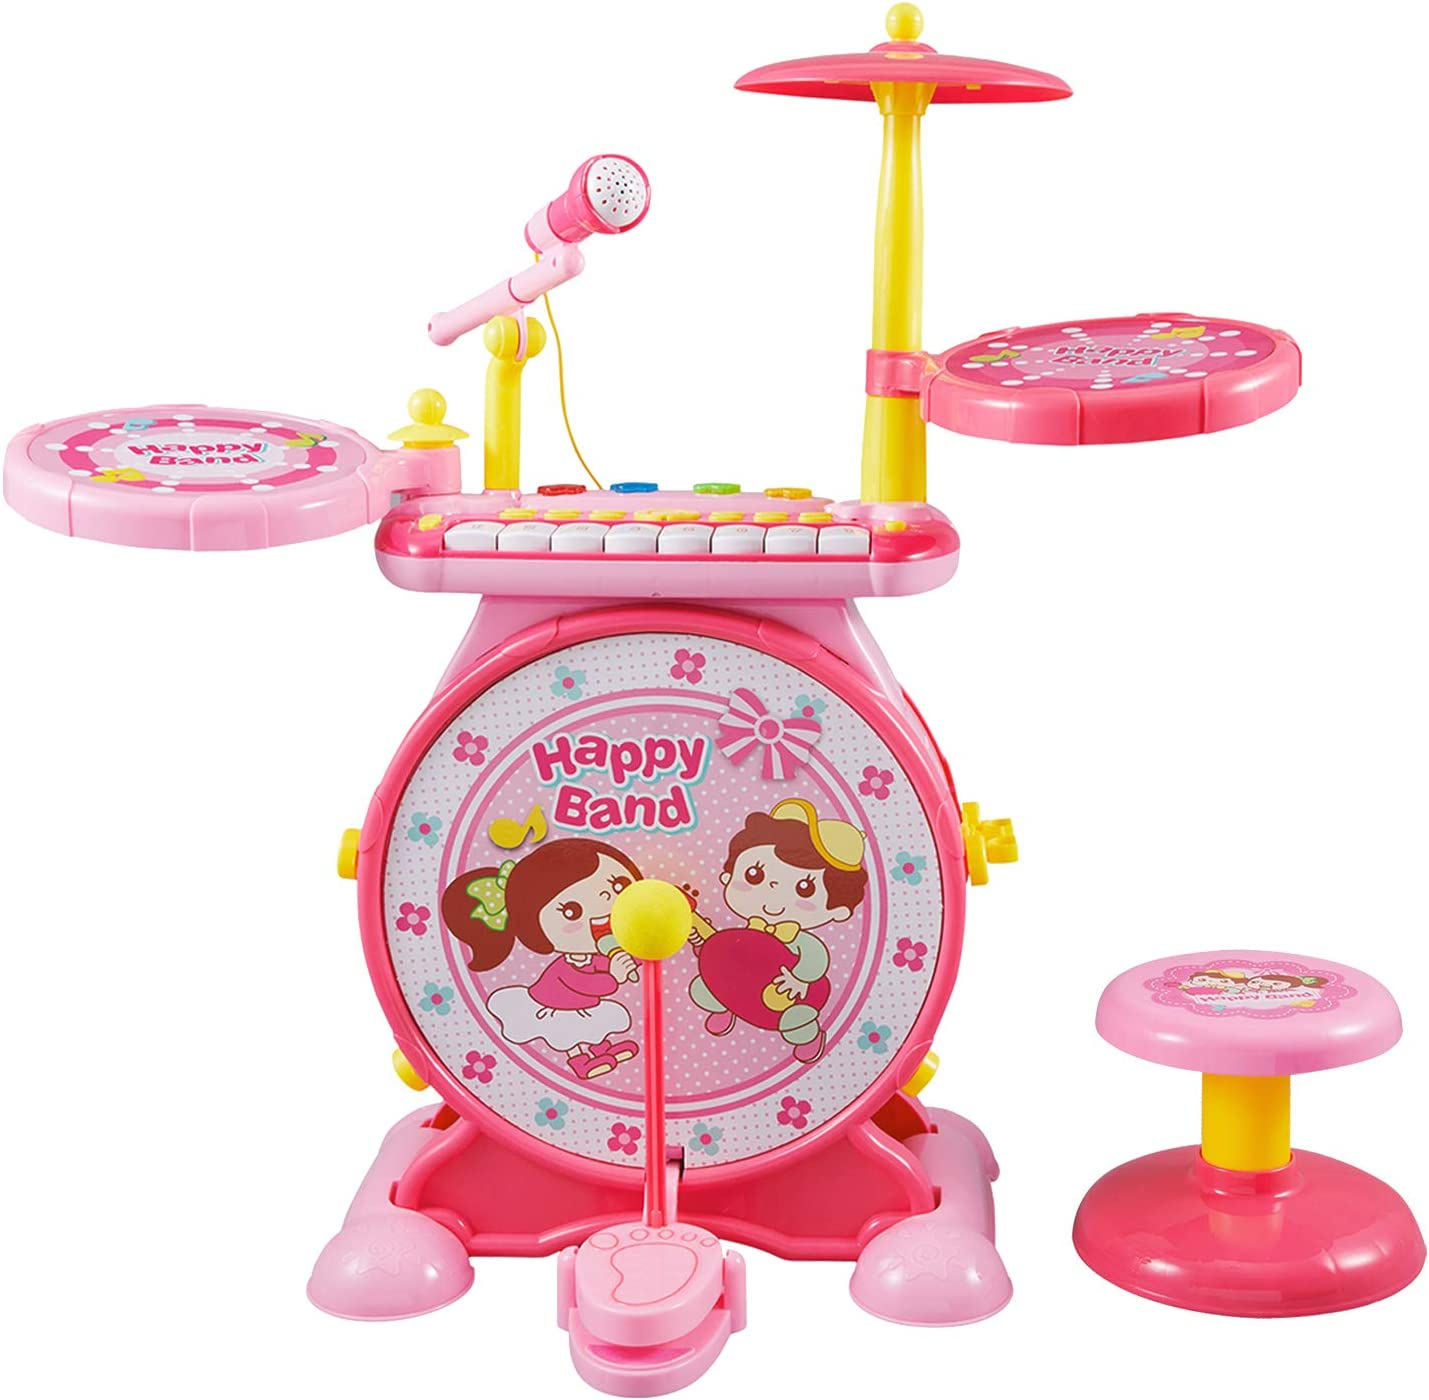 Reditmo Toddlers Toy Drum Set for Mini with Piano Popularity Kids Over item handling ☆ Keyboard